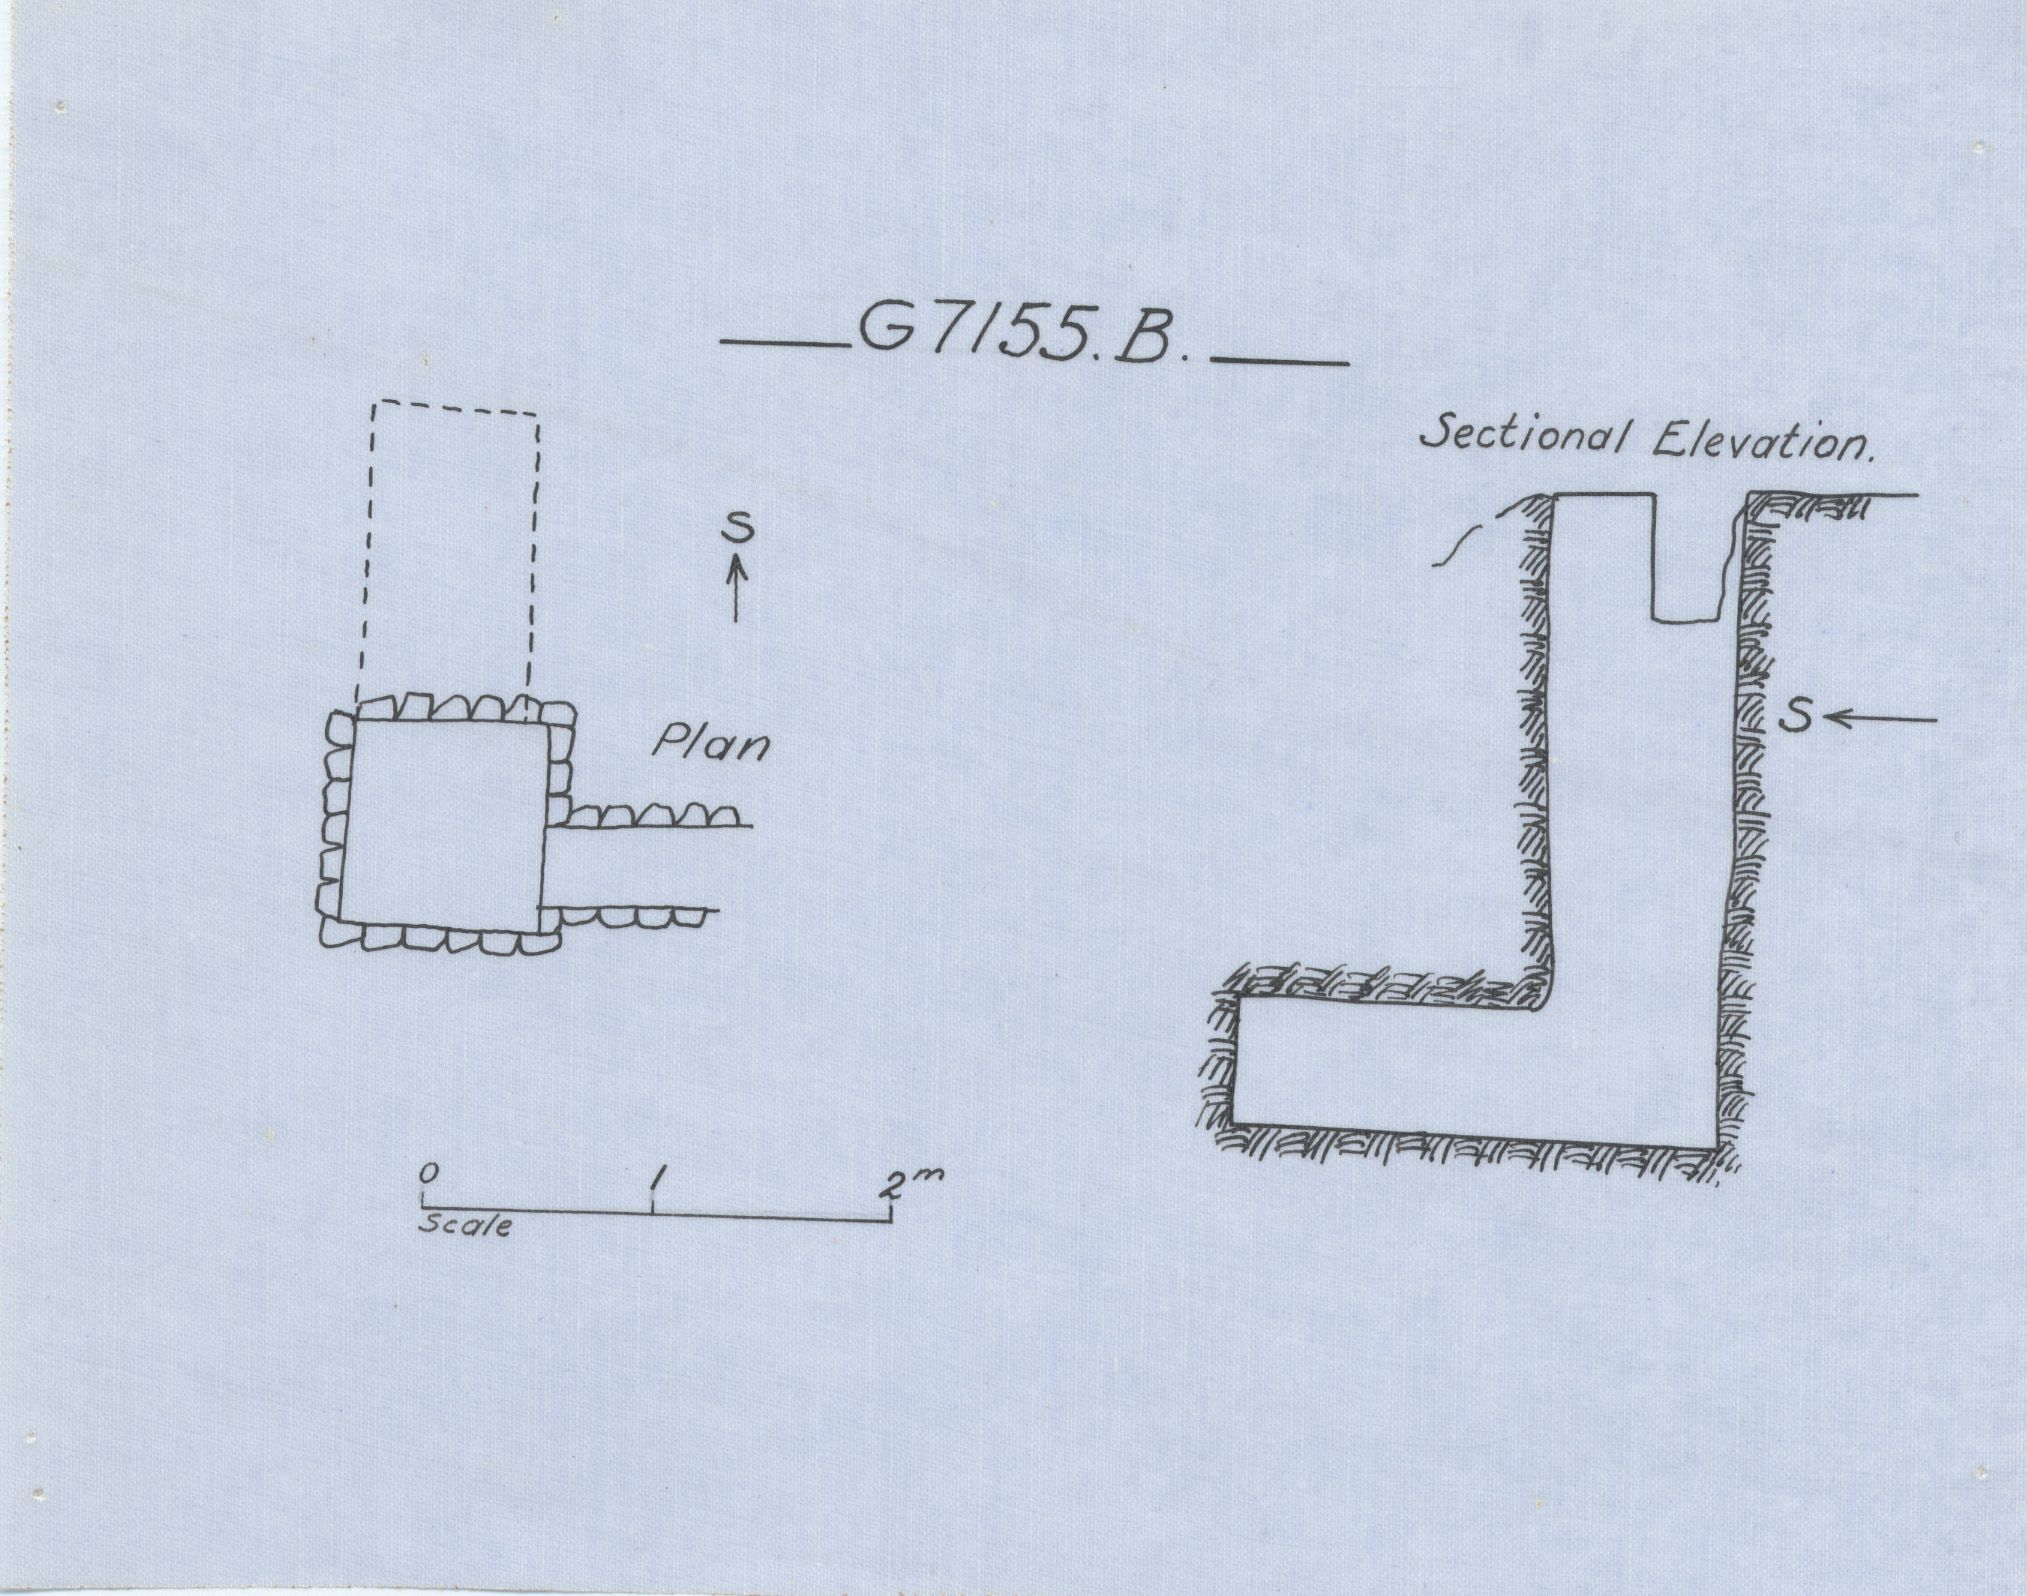 Maps and plans: G 7155, Shaft B